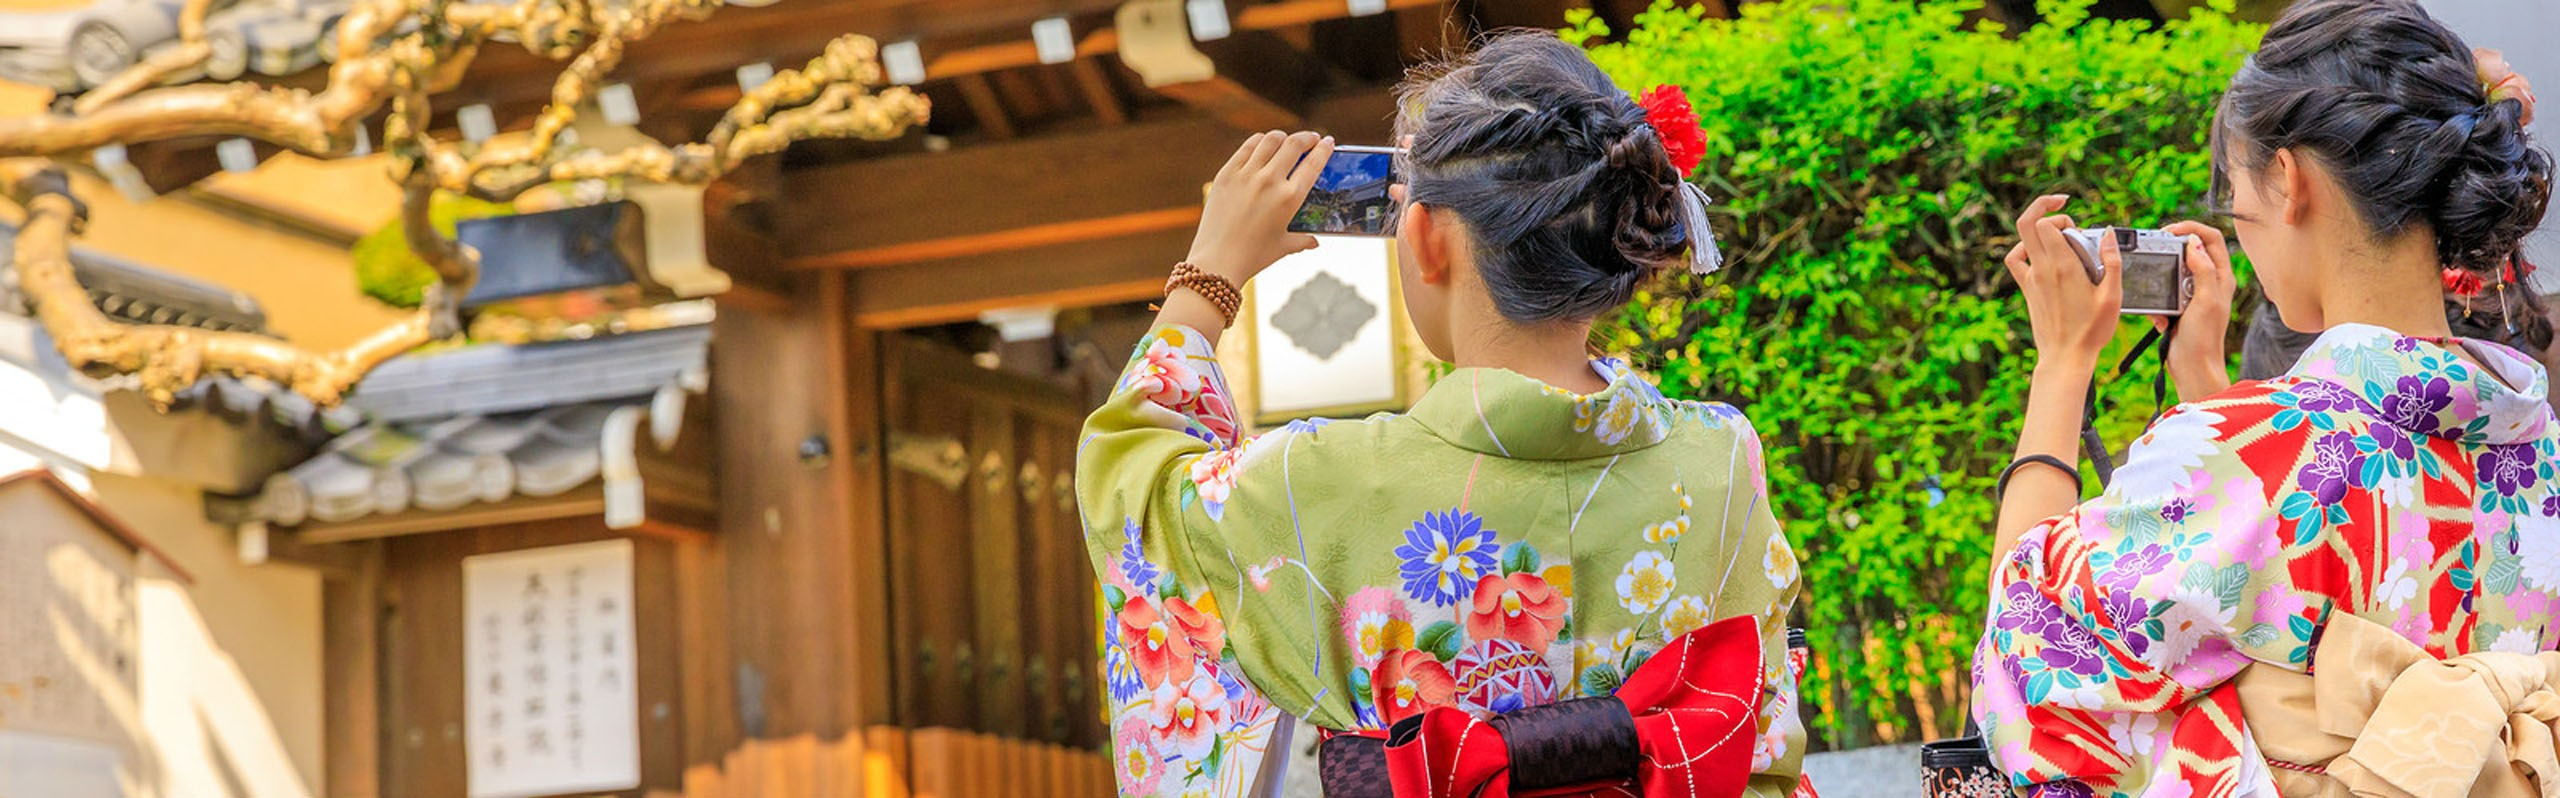 Top 8 Things to Do with Kids in Japan